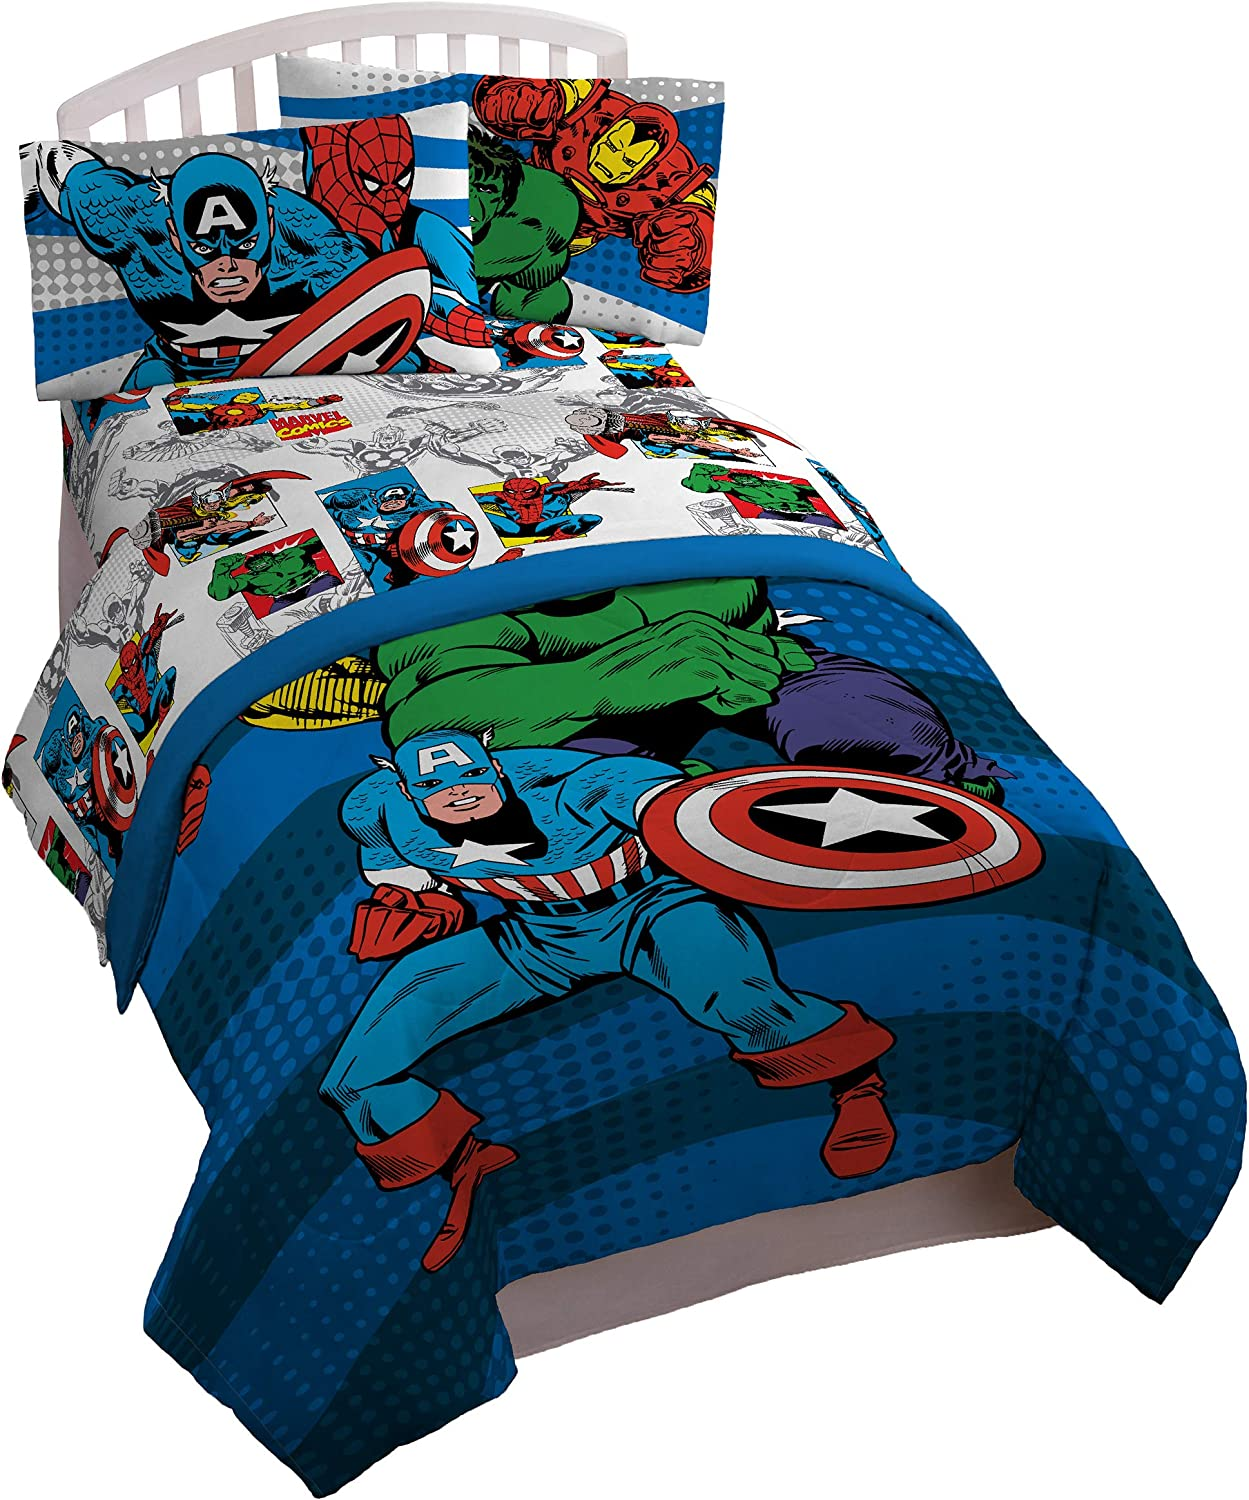 Jay Franco Marvel Comics Avengers Good Guys 4 Piece Twin Bed Set,